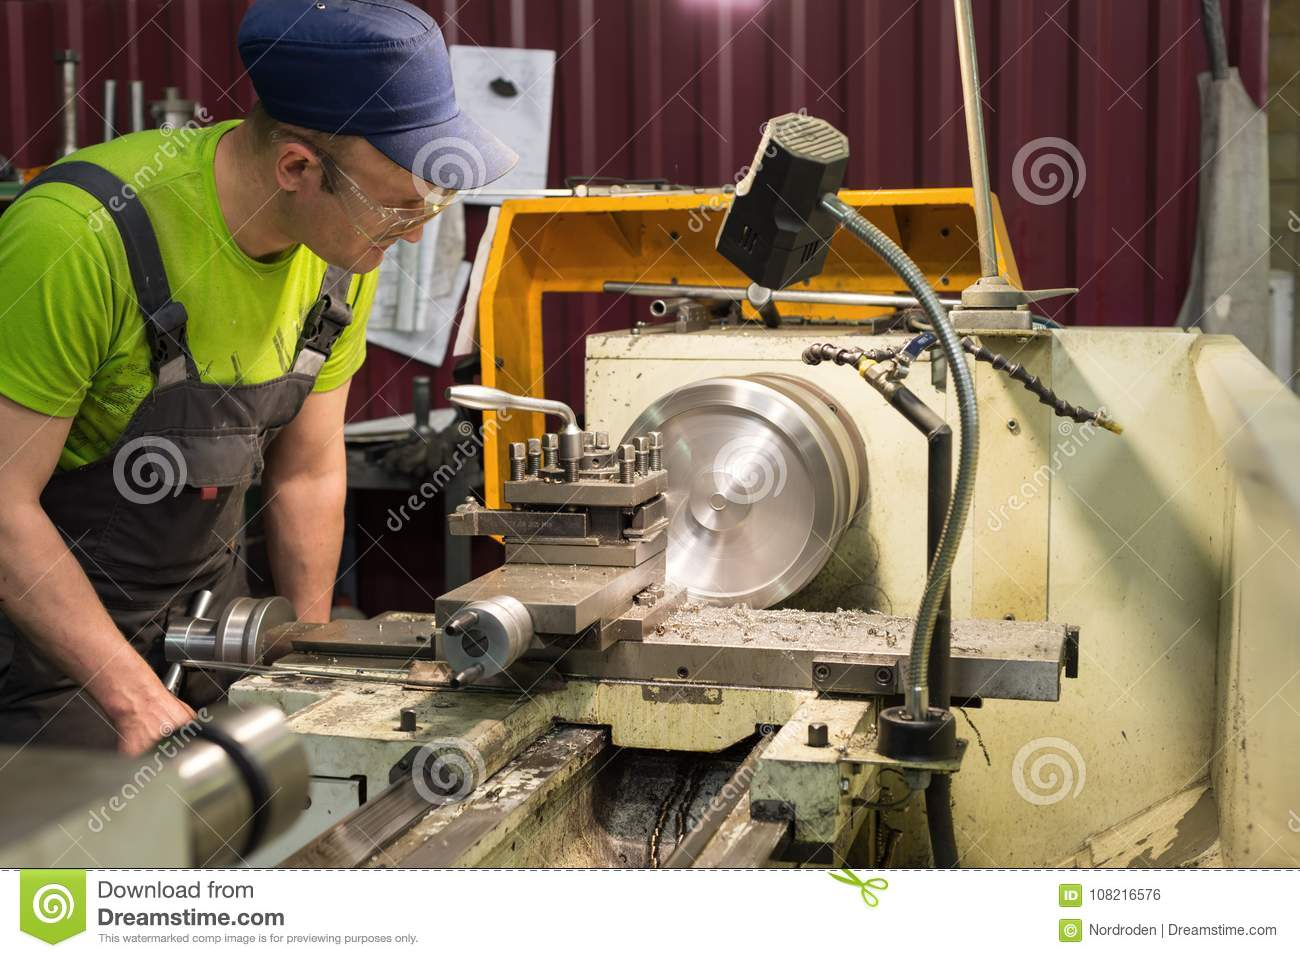 A young turner processes a metal workpiece on a mechanical lathe.